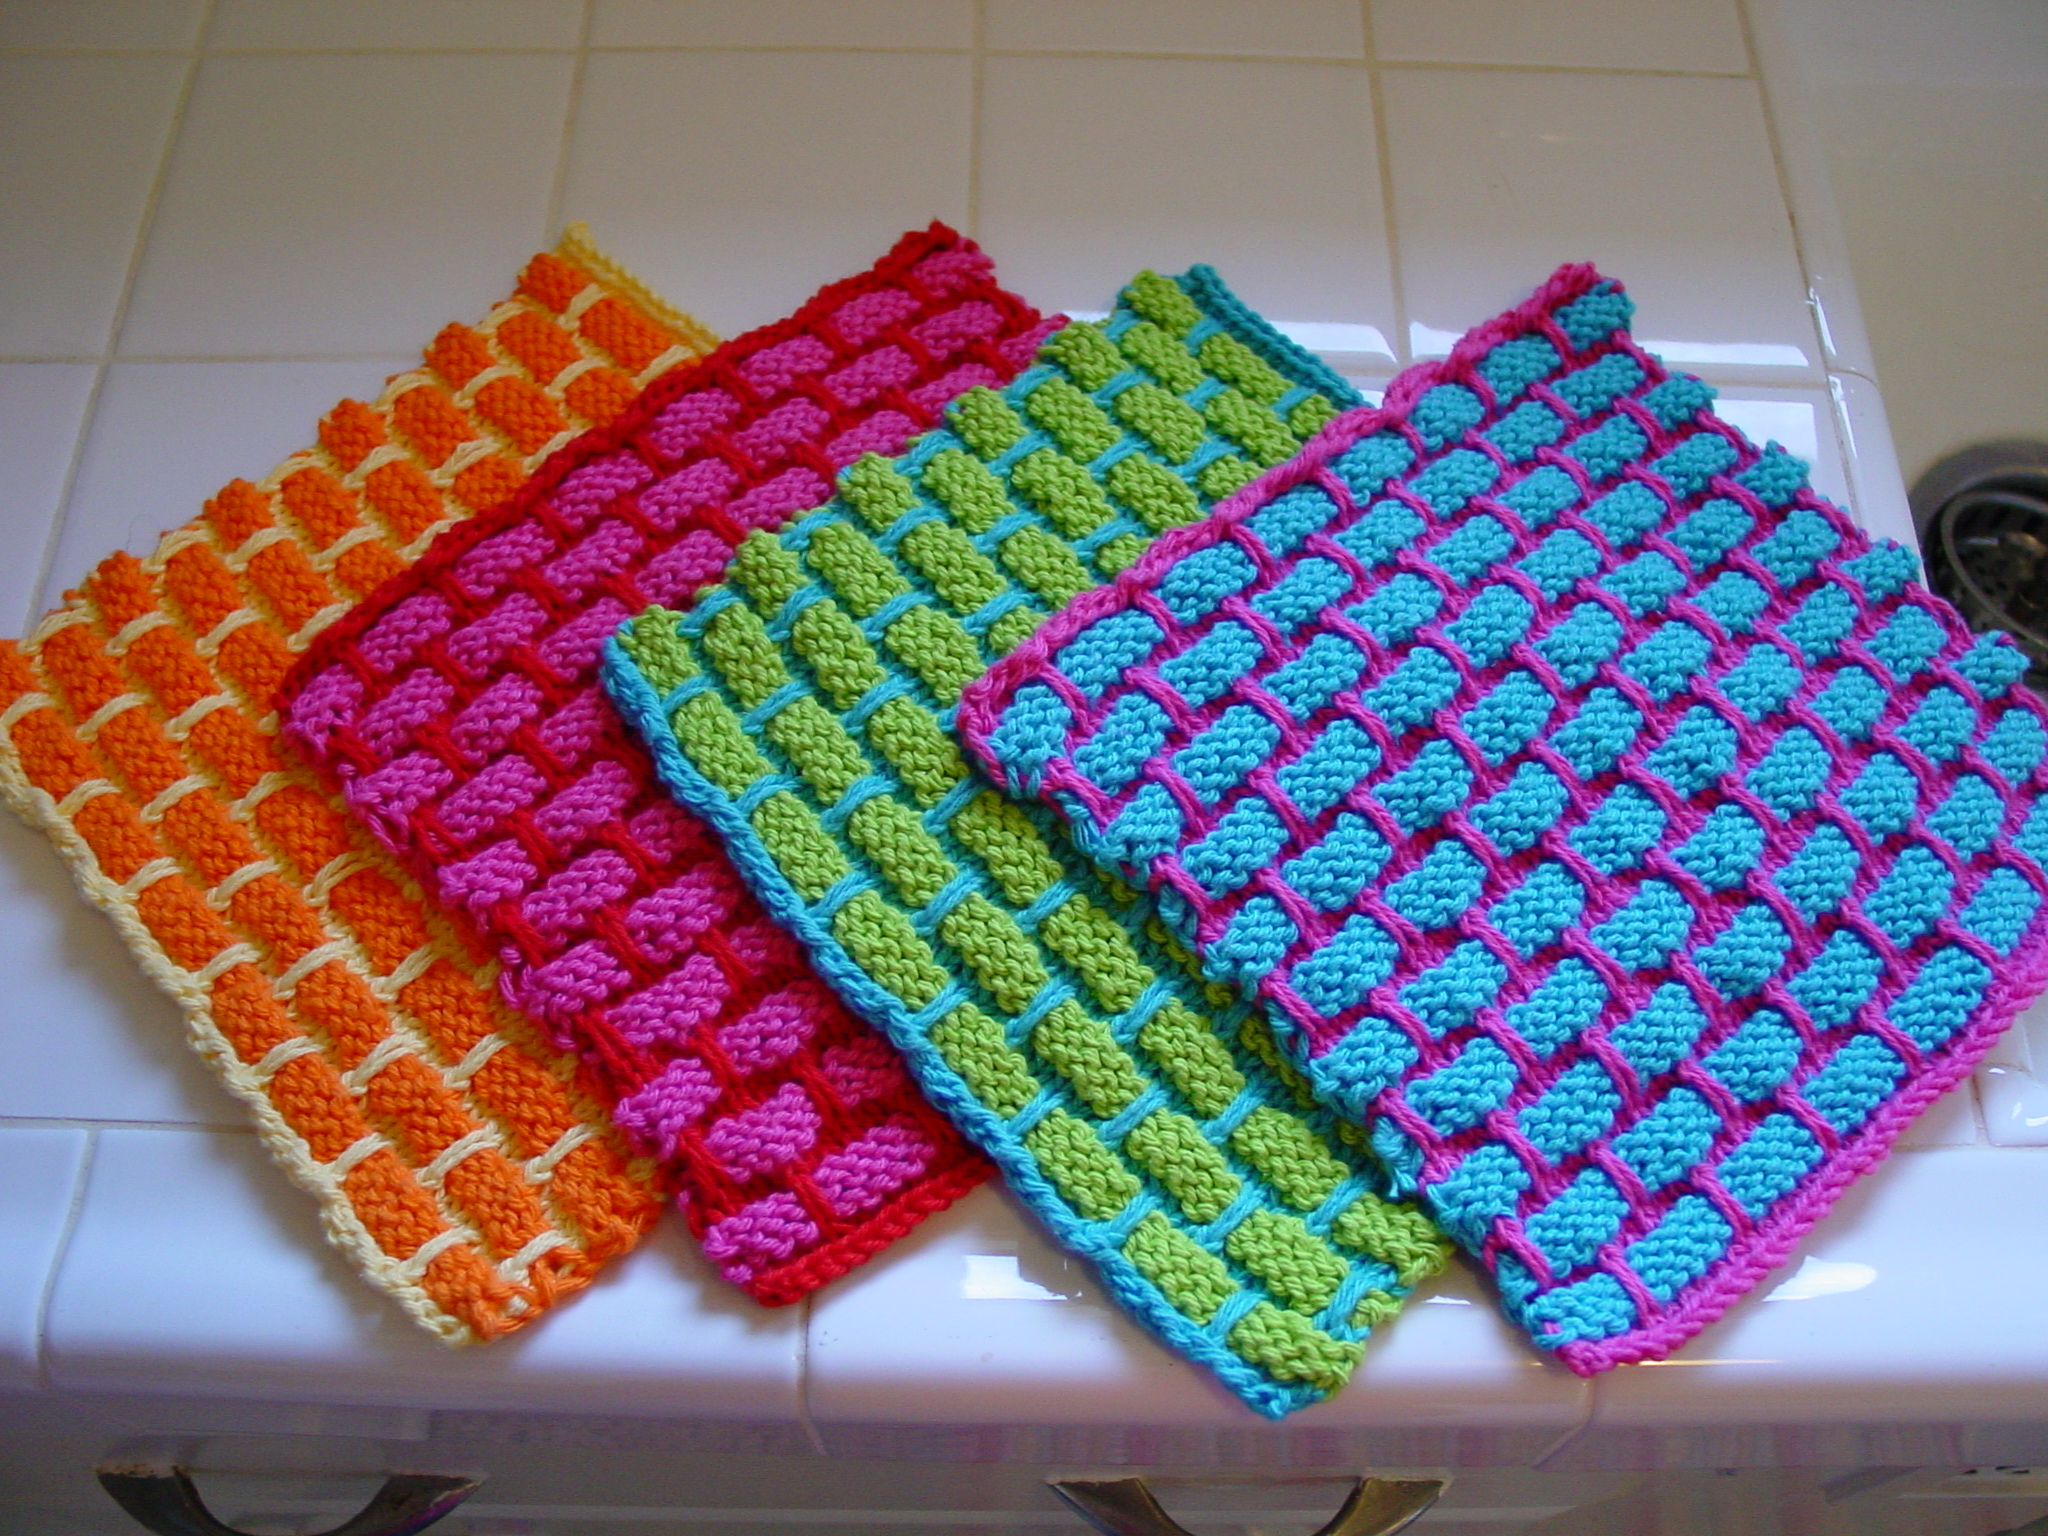 How To Knit Dishcloths Free Patterns : File:Dishcloths.jpg - Wikimedia Commons